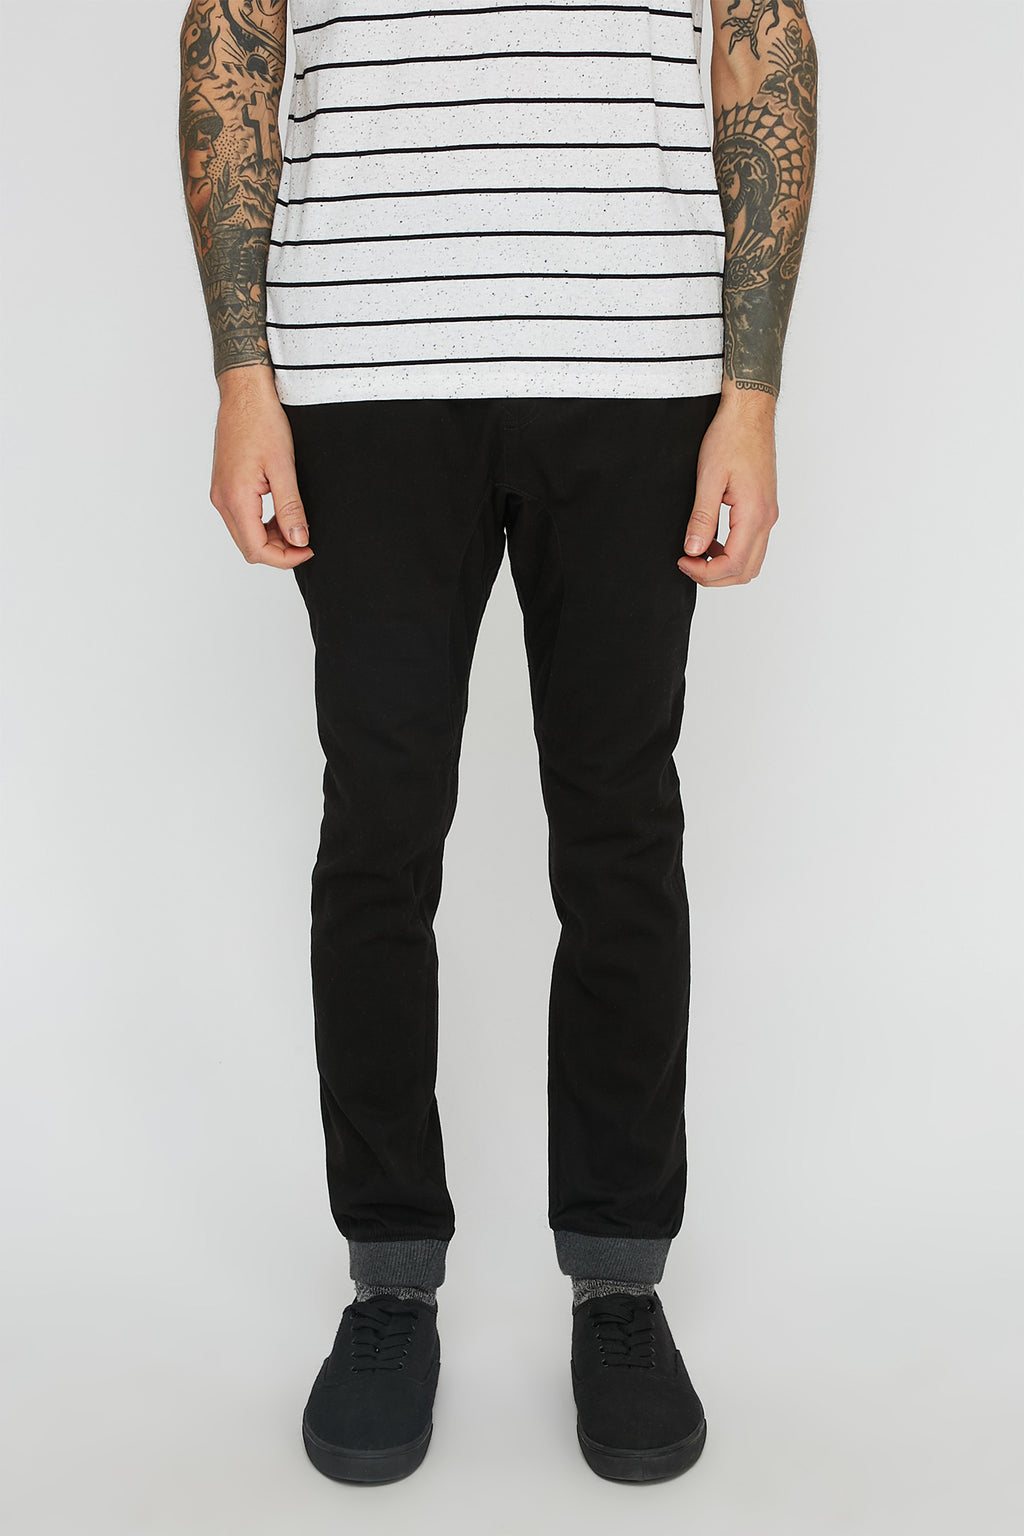 West49 Mens Solid Twill Jogger